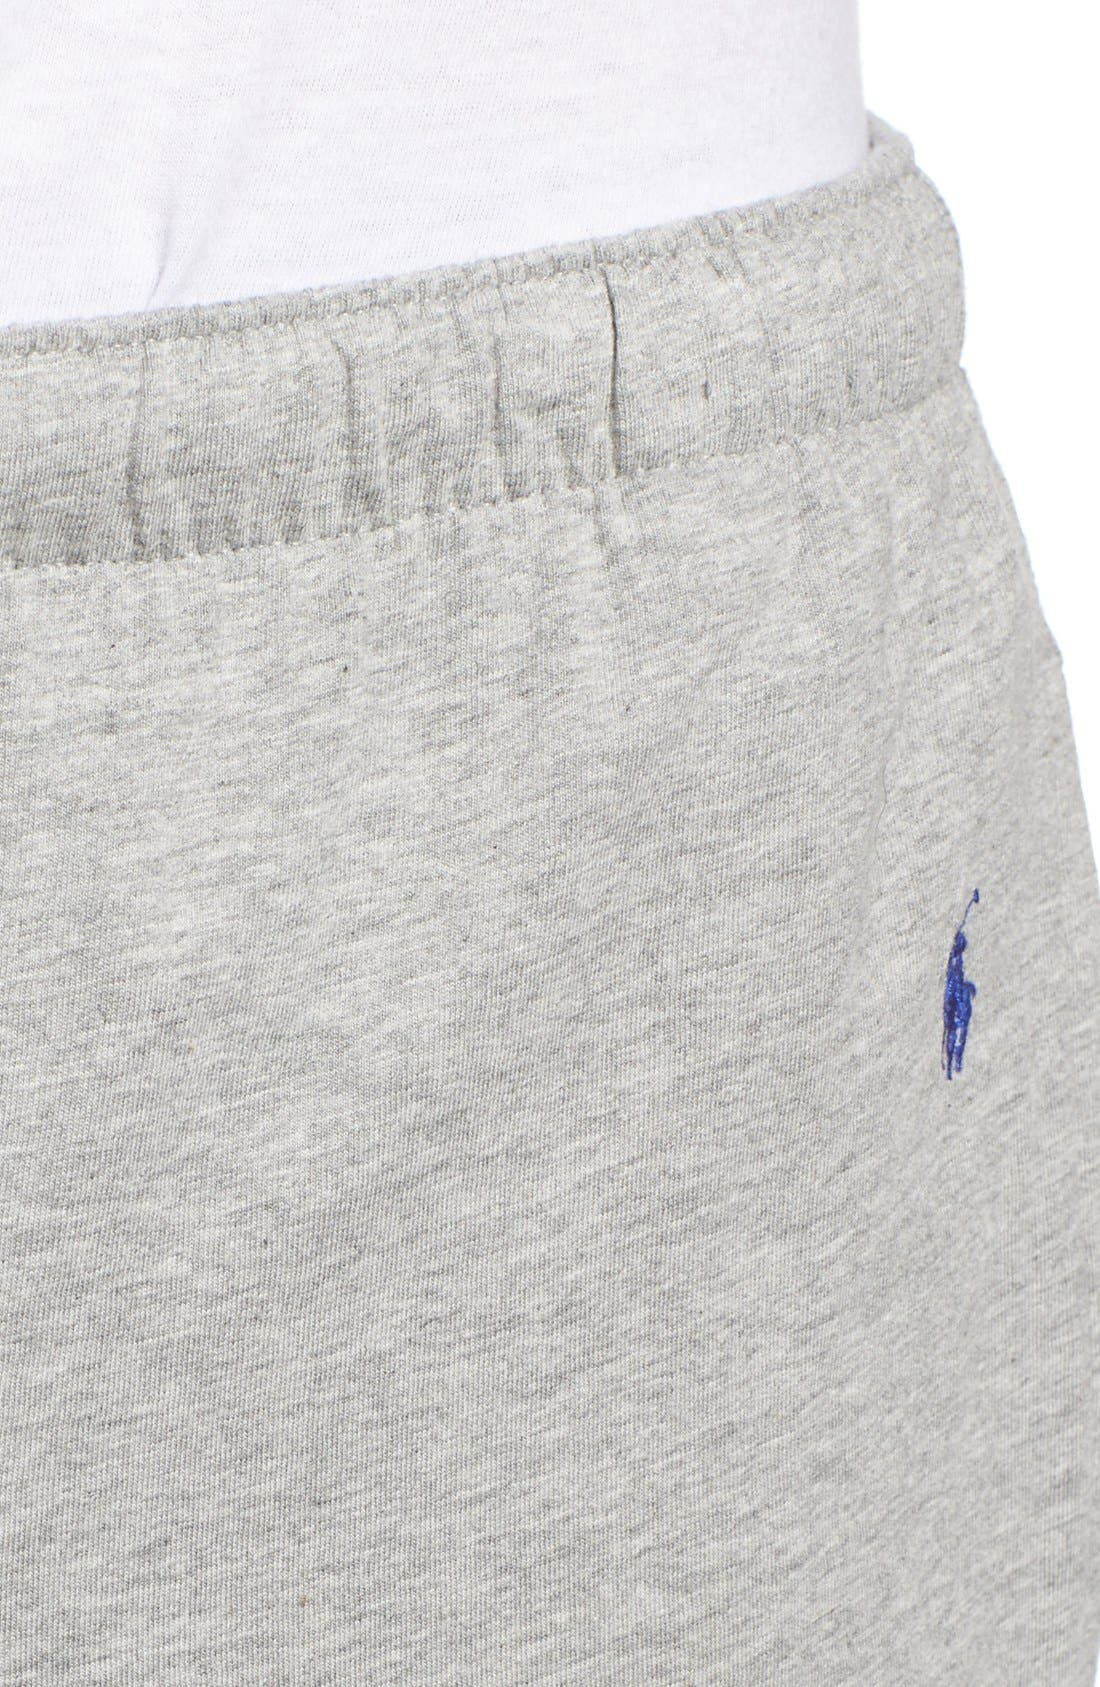 POLO RALPH LAUREN, Relaxed Fit Jogger Pants, Alternate thumbnail 5, color, ANDOVER HEATHER